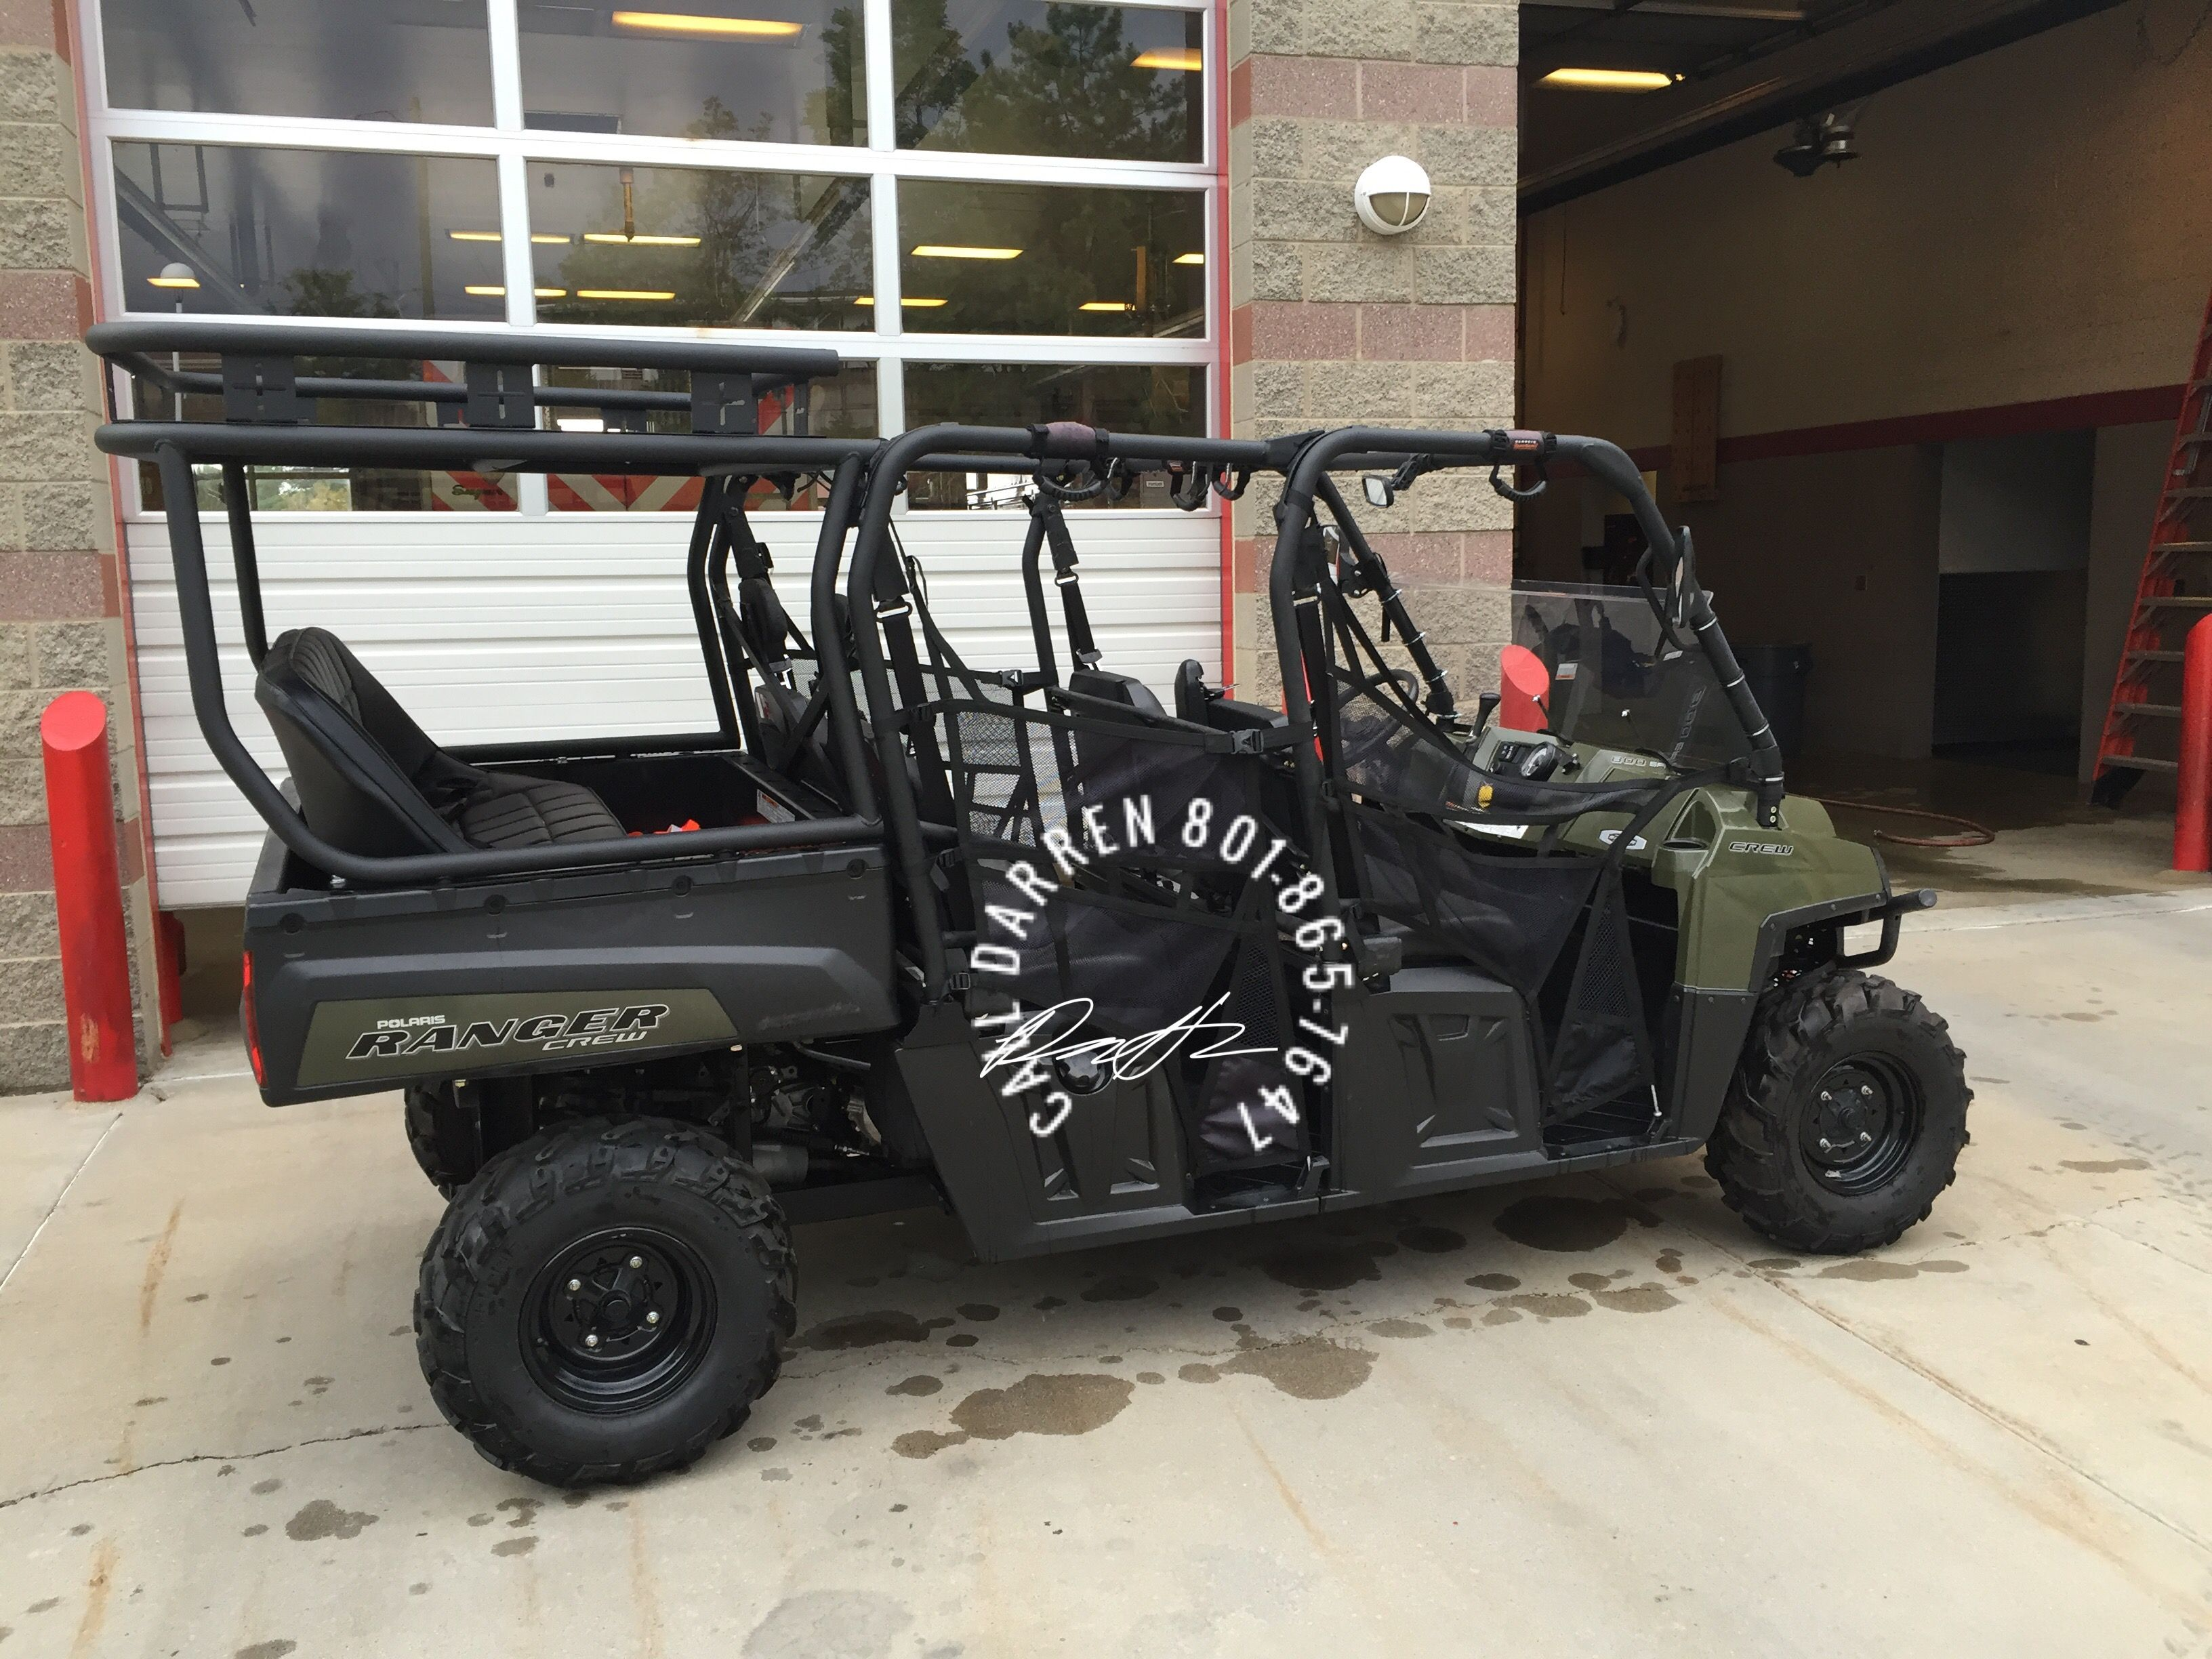 Polaris Ranger 800 Crew Cab Roll Cage U0026 Seat Package With Aluminum Roof An  Safari Rack